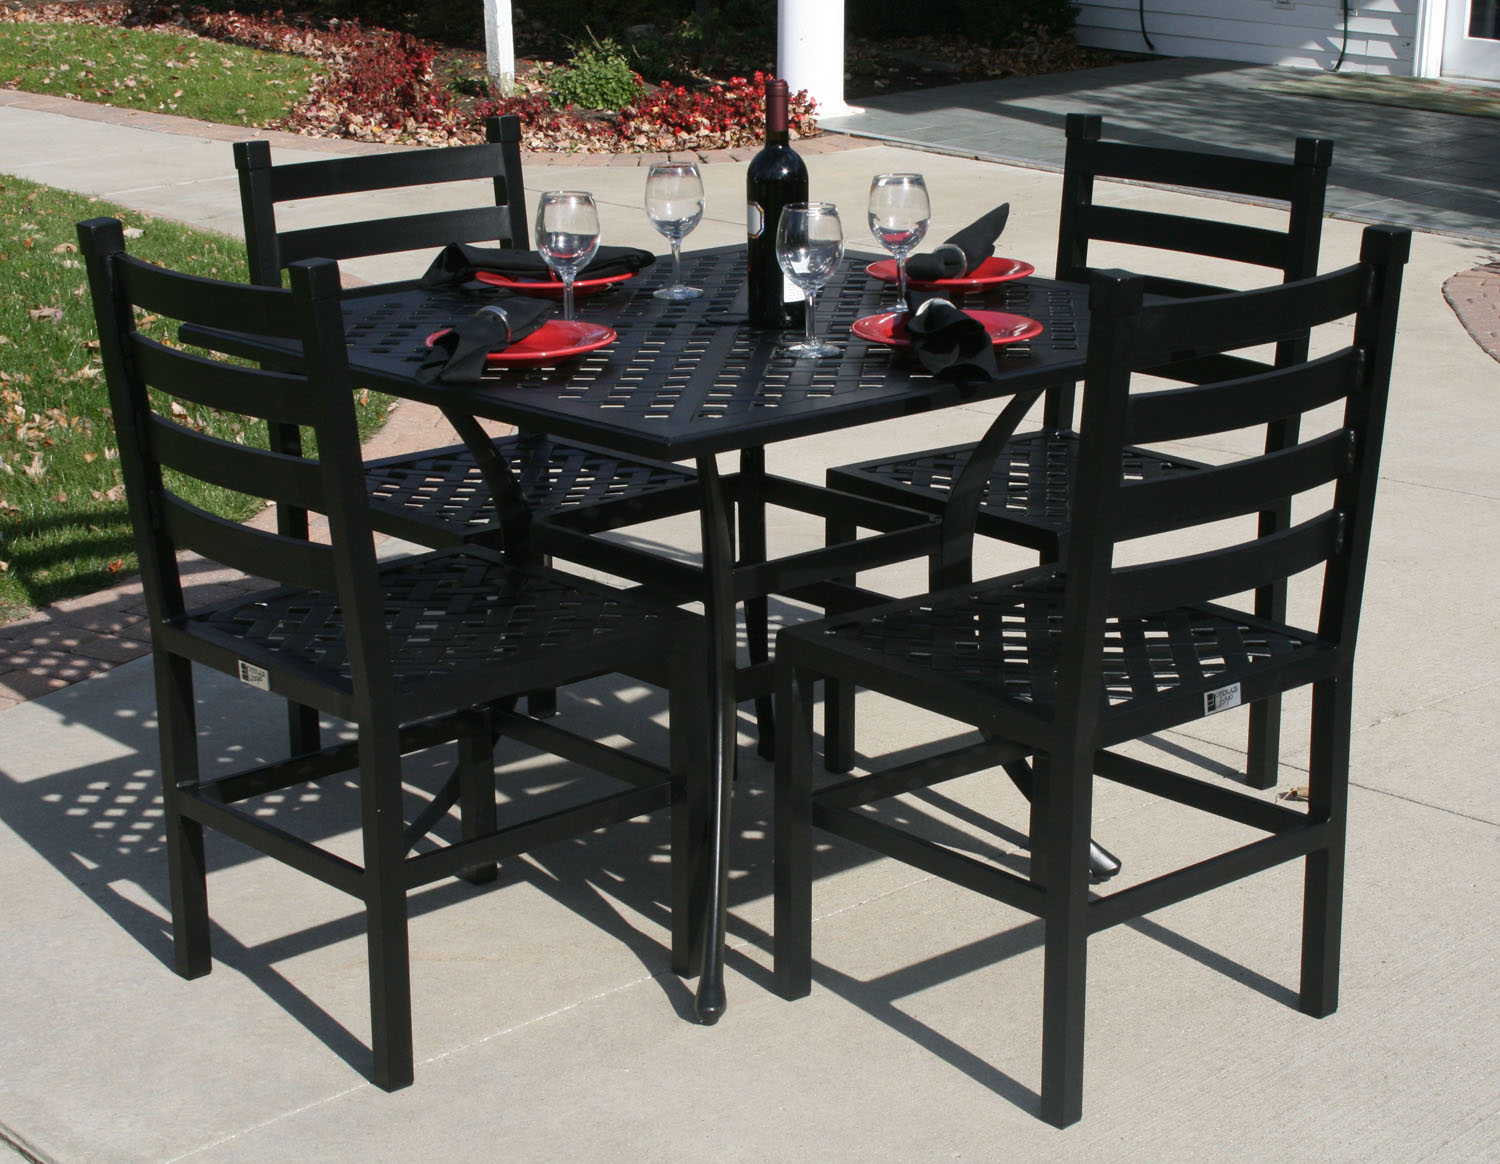 Ansley Luxury 4 Person All Welded Cast Aluminum Patio Furniture Dining Set W 36 Square Table